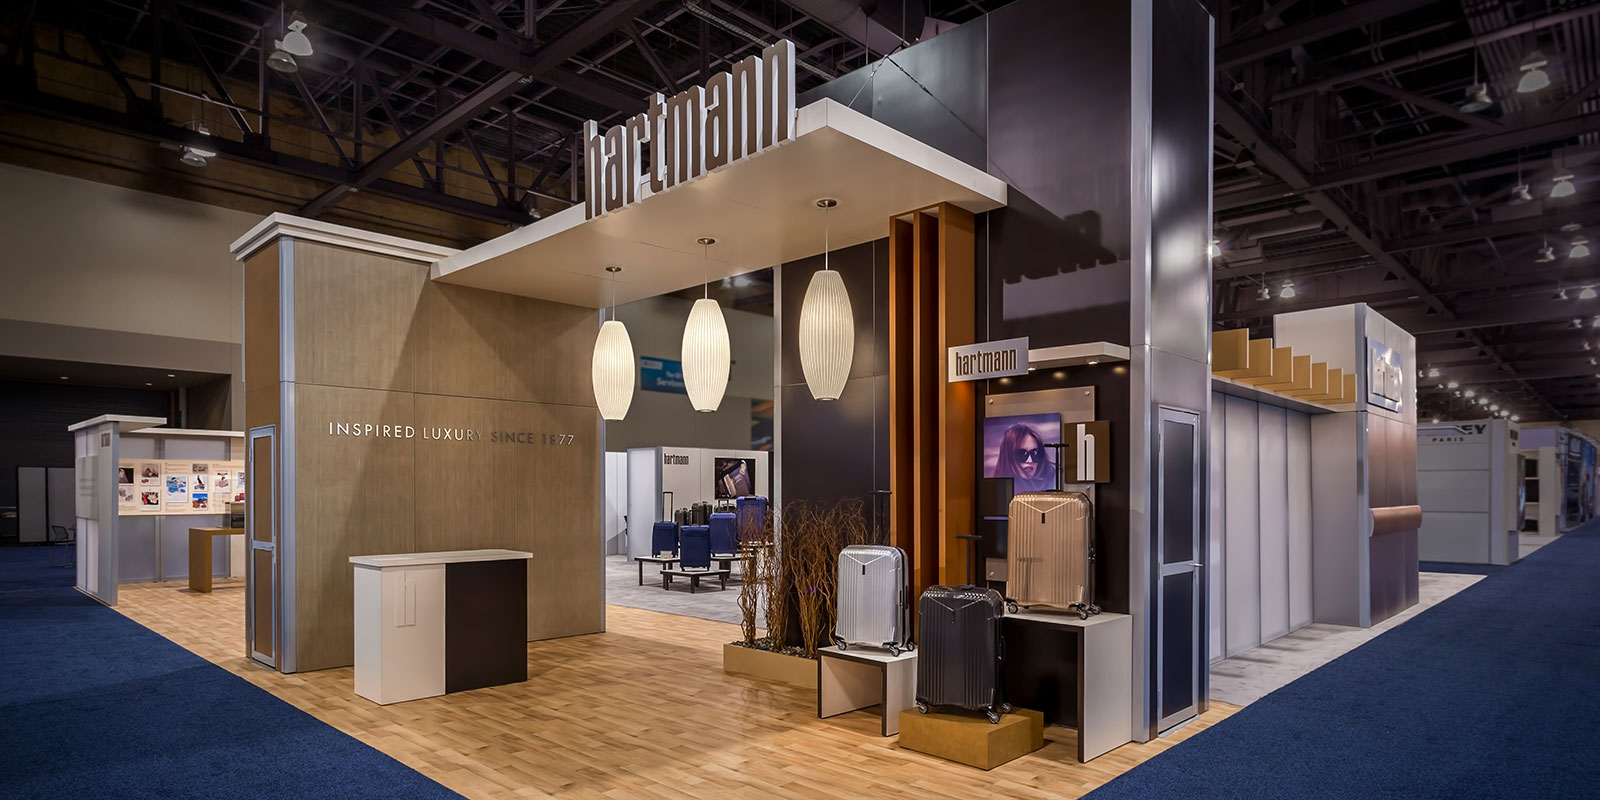 Hill & Partners Rental Branded Environment Trade Show Exhibit for Hartmann